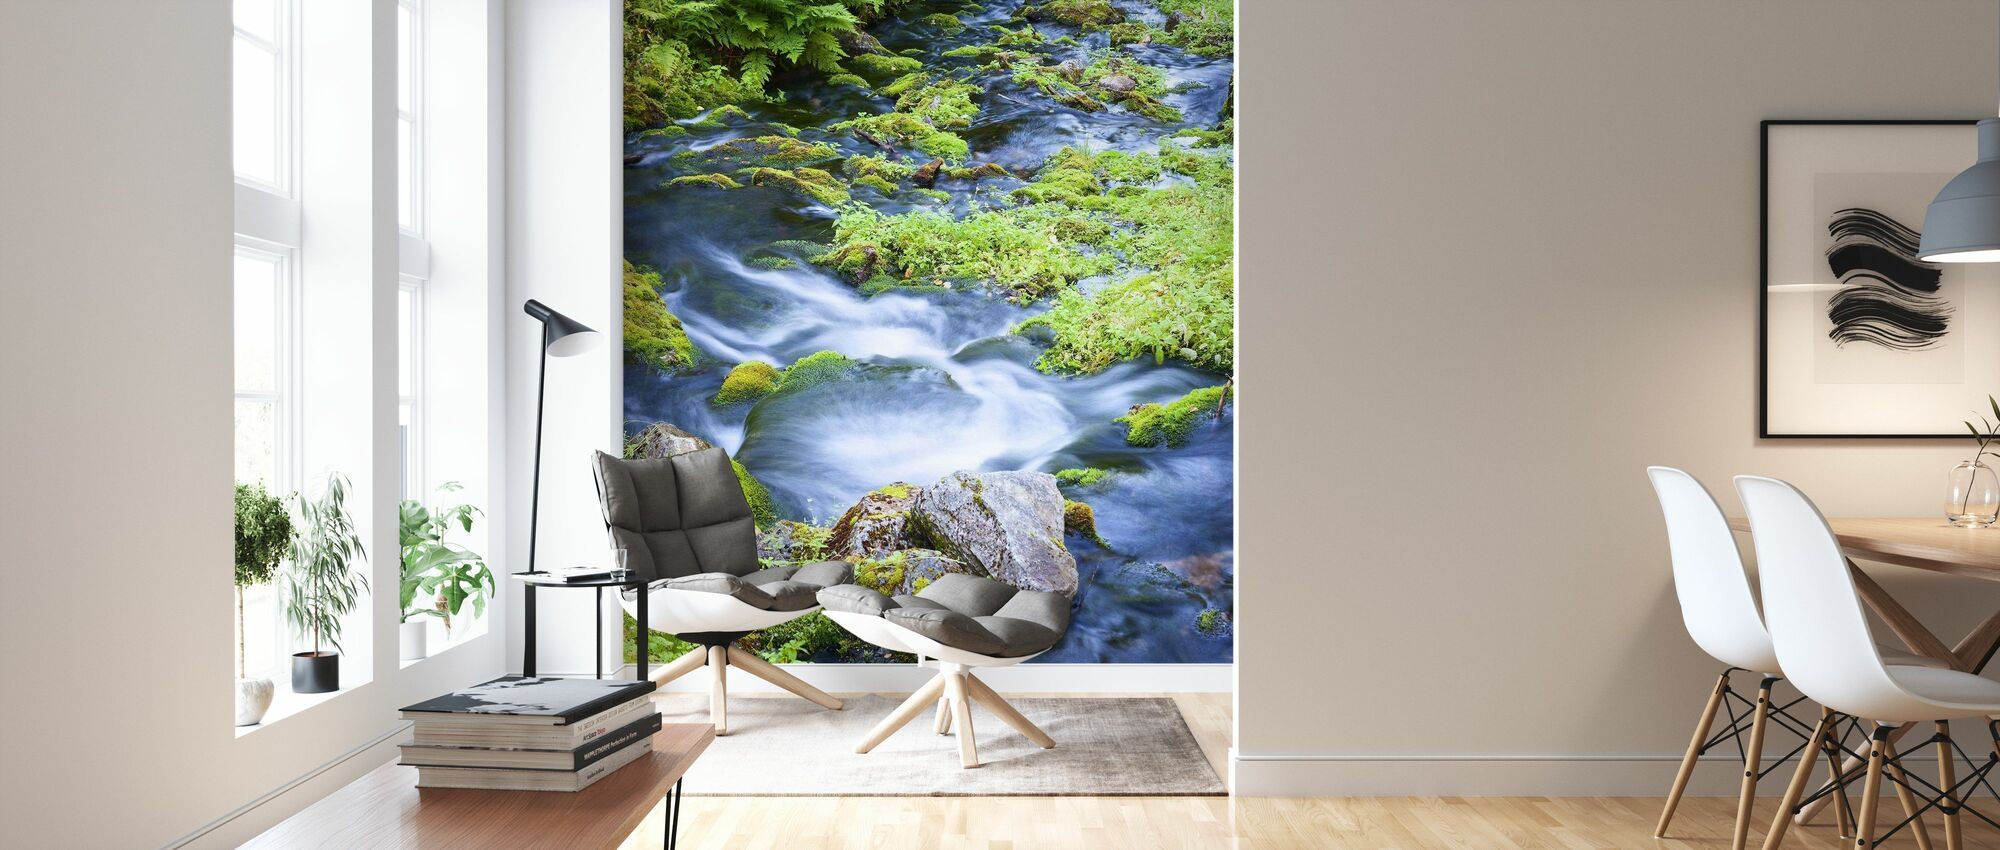 Finnish Brook - Wallpaper - Living Room